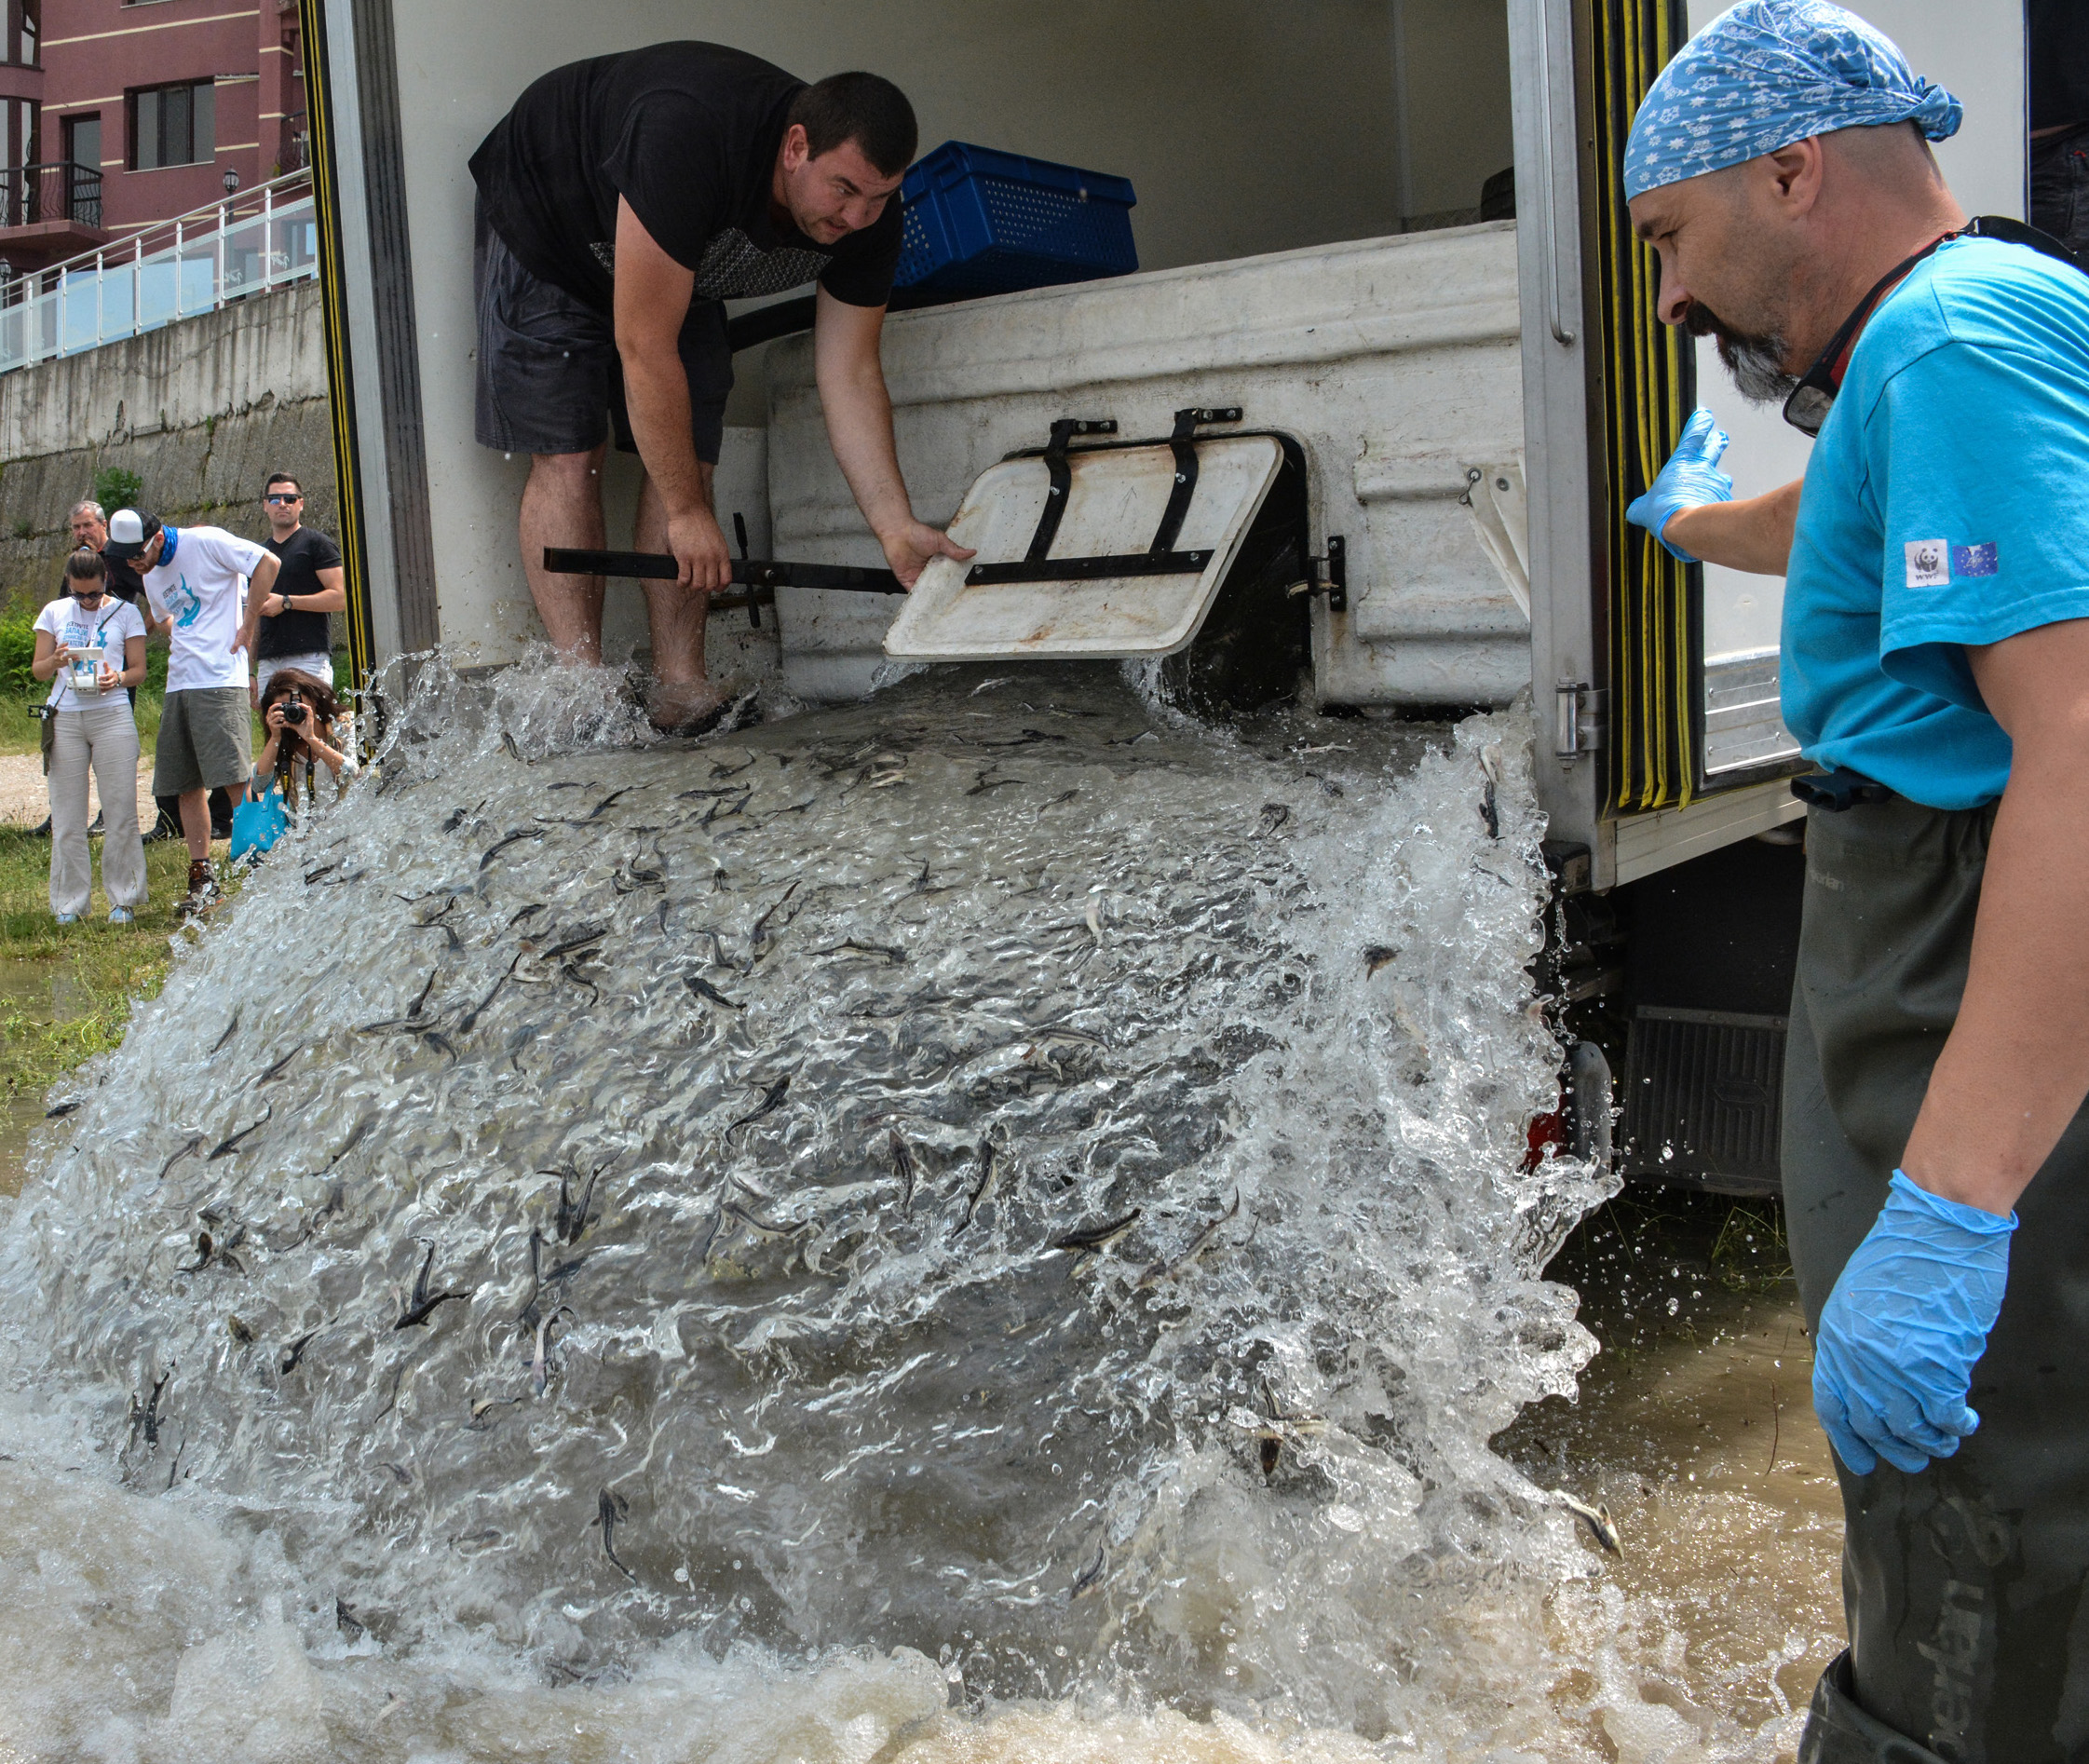 WWF released more than 20,000 Russian Sturgeons into the Danube | WWF